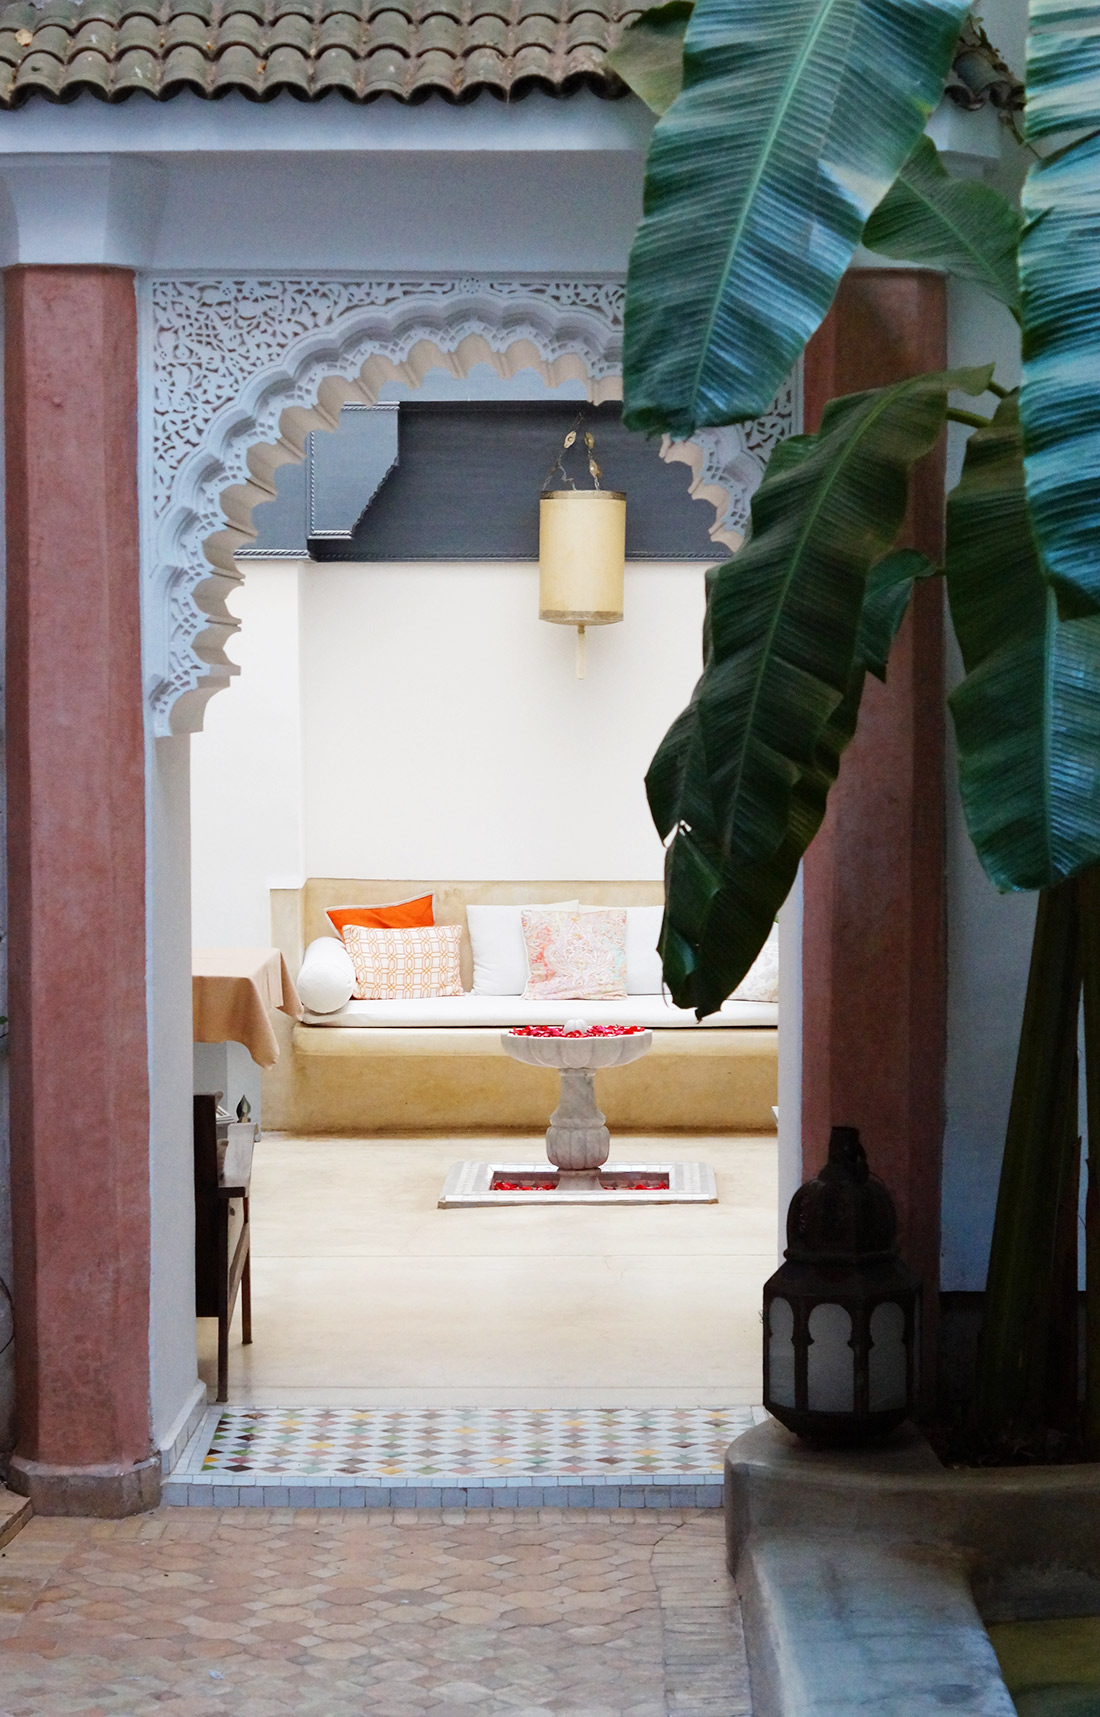 Bag-at-you---Fashion-blog---Postcard-from-Marrakesh---Riad-Tawargit---Maroc